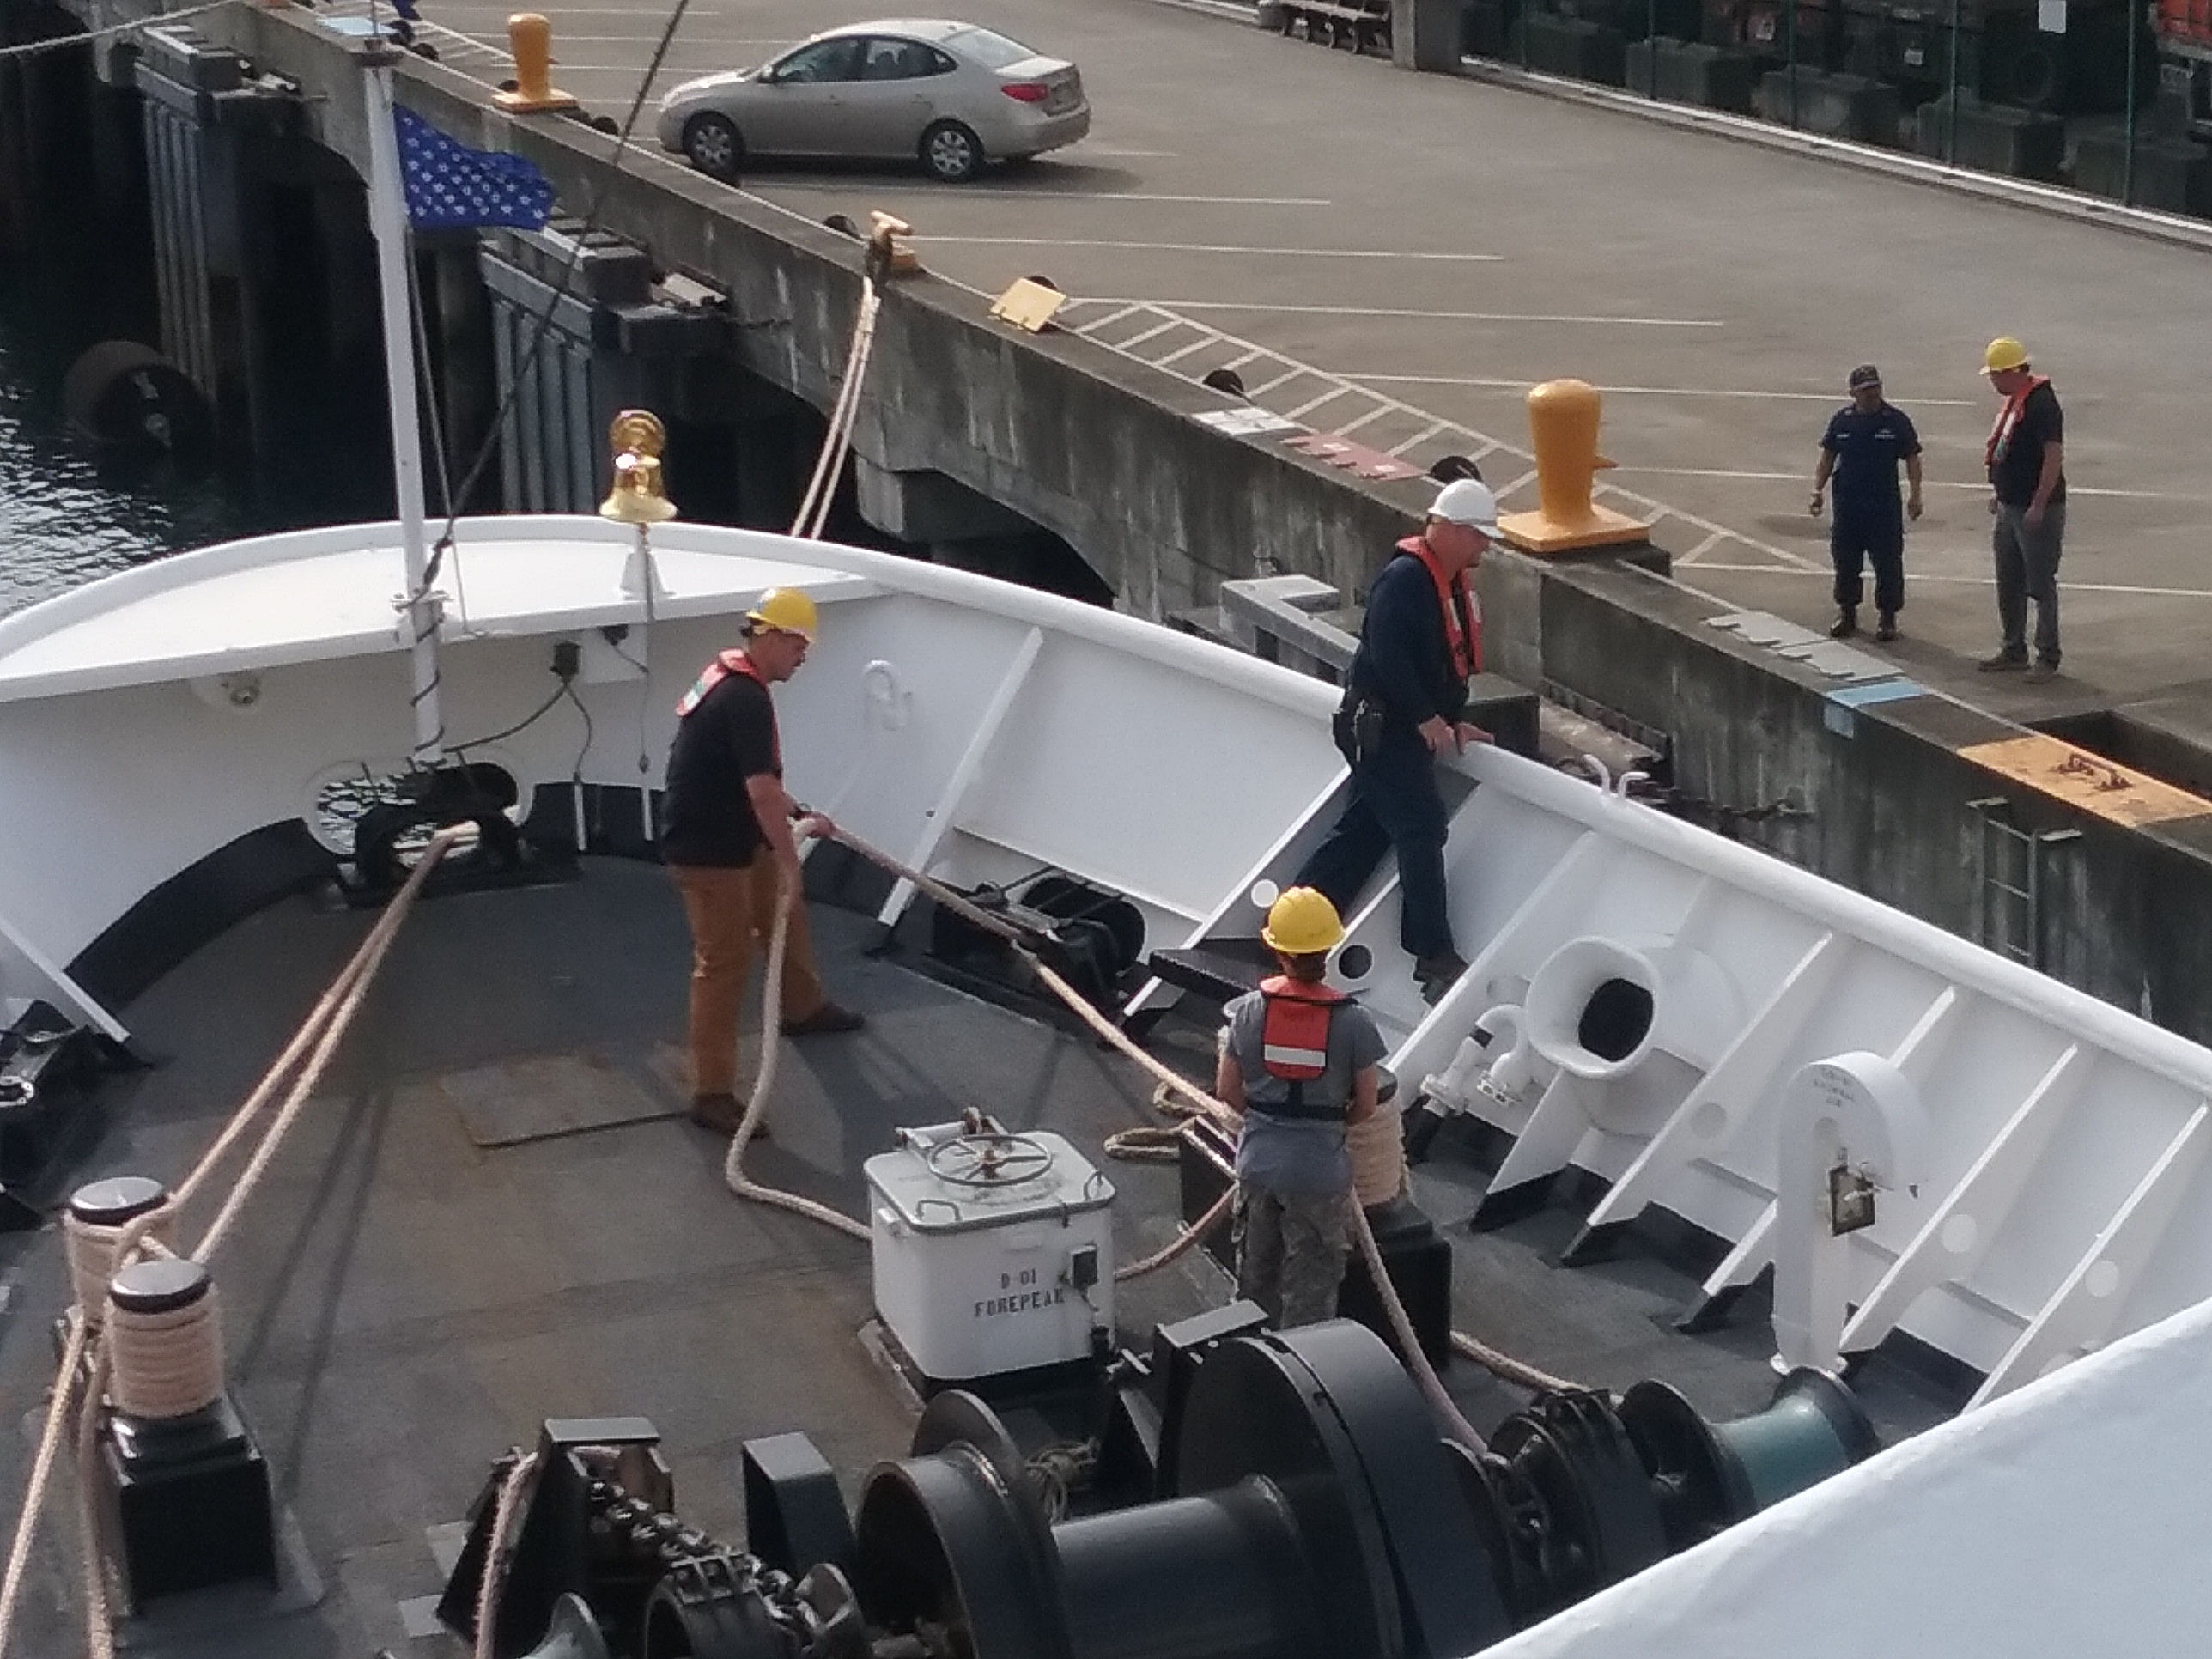 The deck crew preparing to leave port